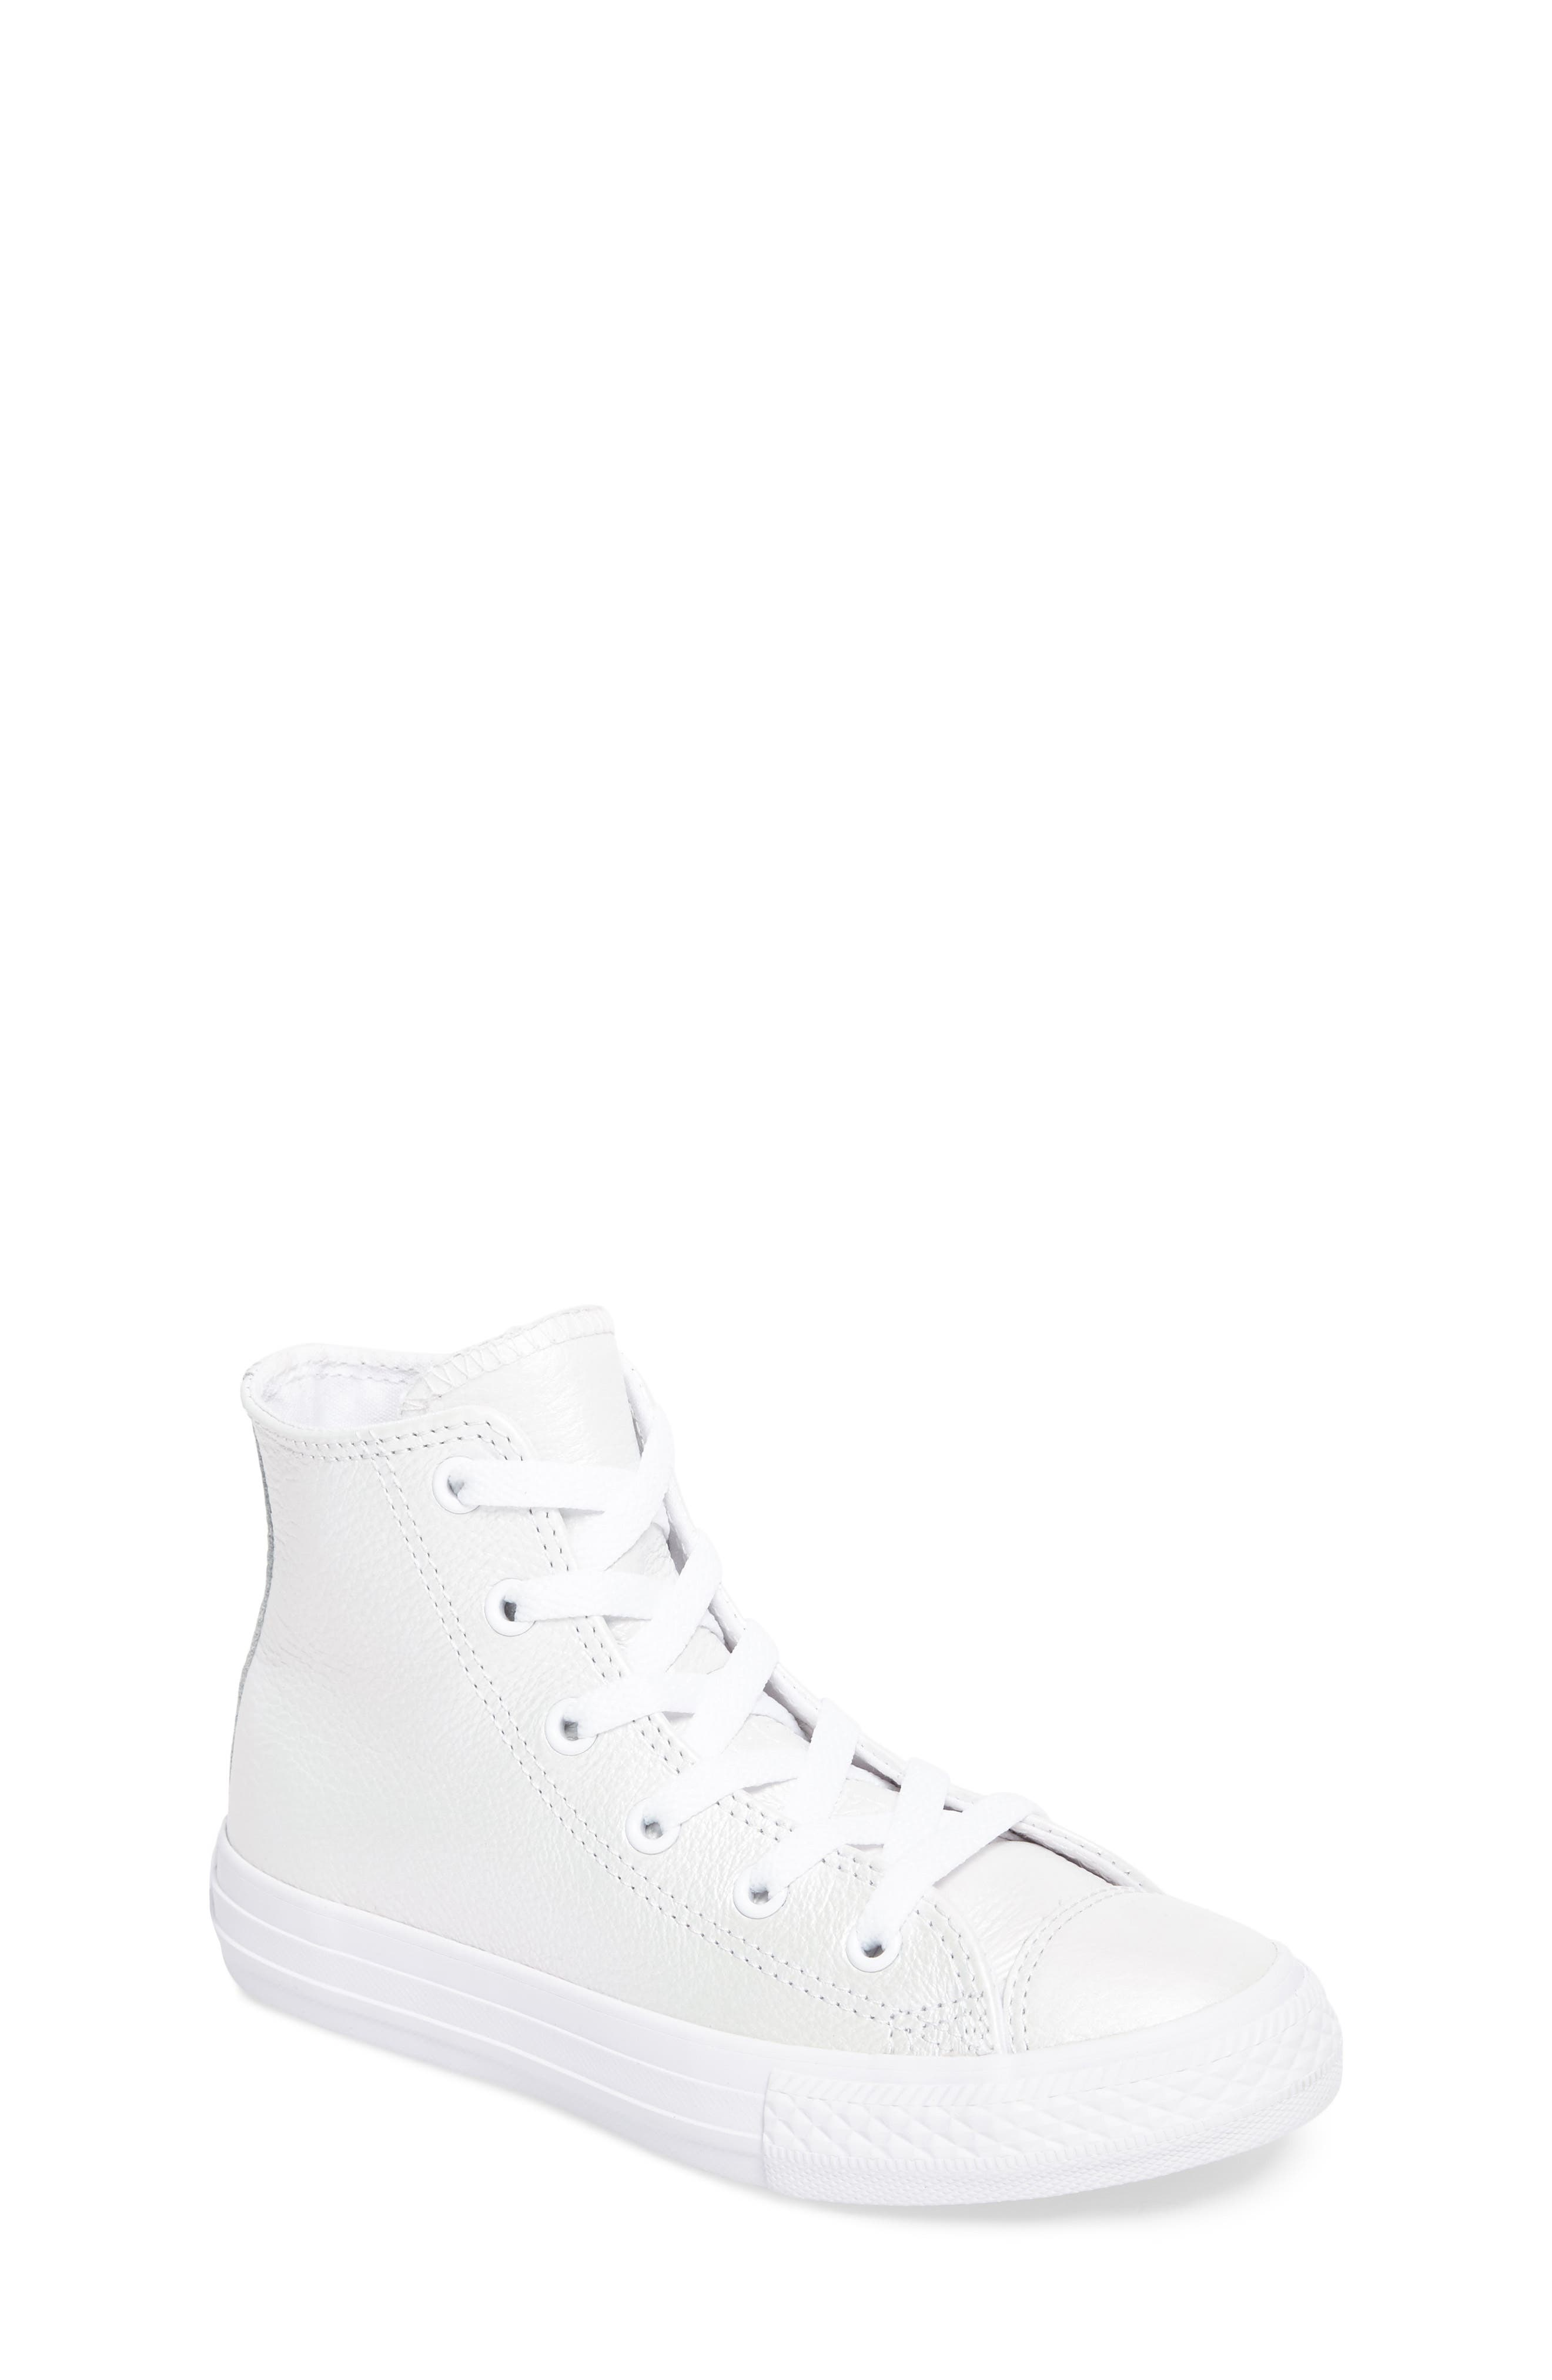 Chuck Taylor<sup>®</sup> All Star<sup>®</sup> Iridescent Leather High Top Sneaker,                             Main thumbnail 1, color,                             White Leather